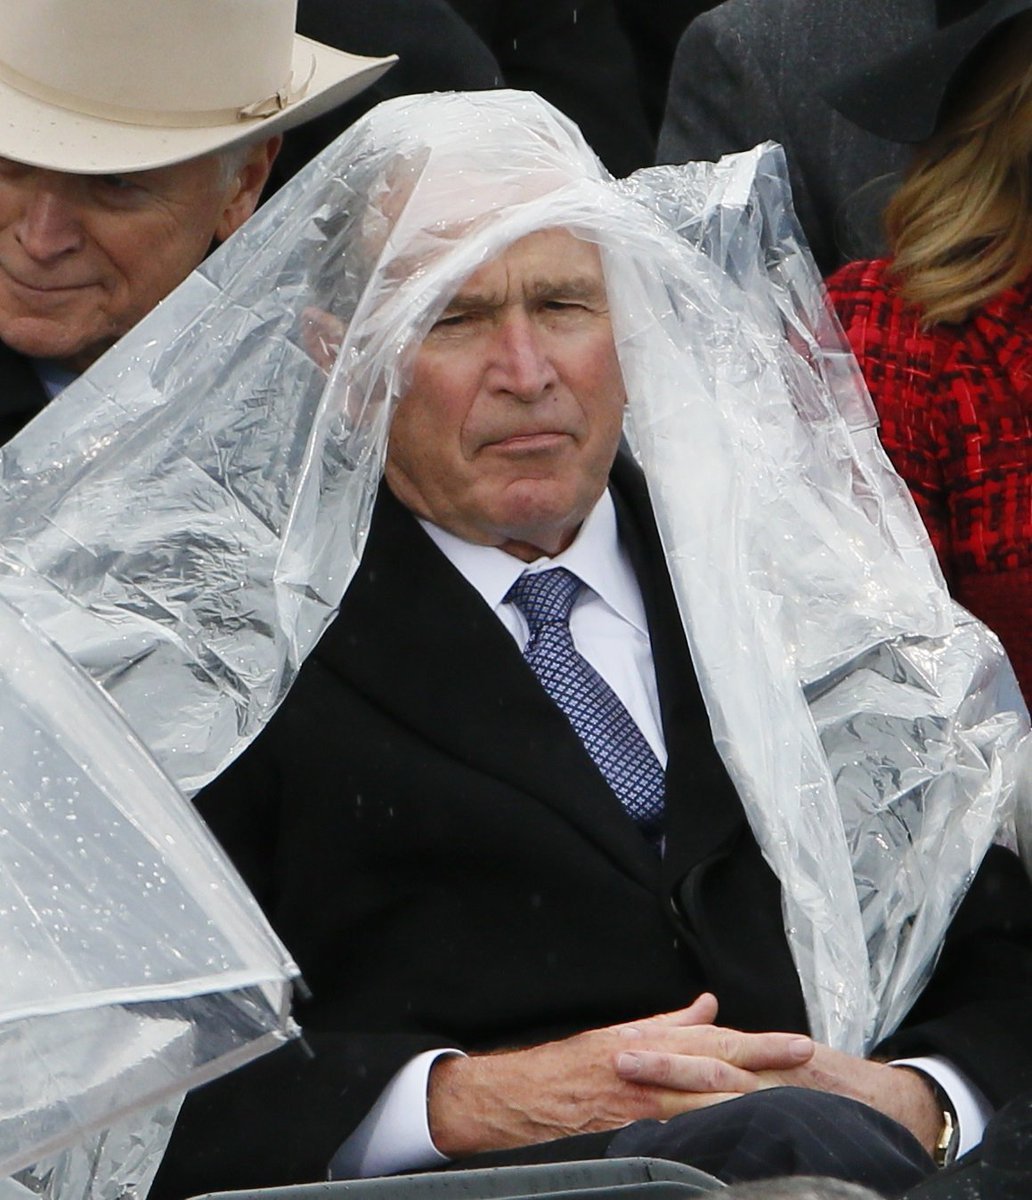 Looks like Ol Dub came for the inaugural speech but prepared for golden showers. ☔ hah!  I do so amuse